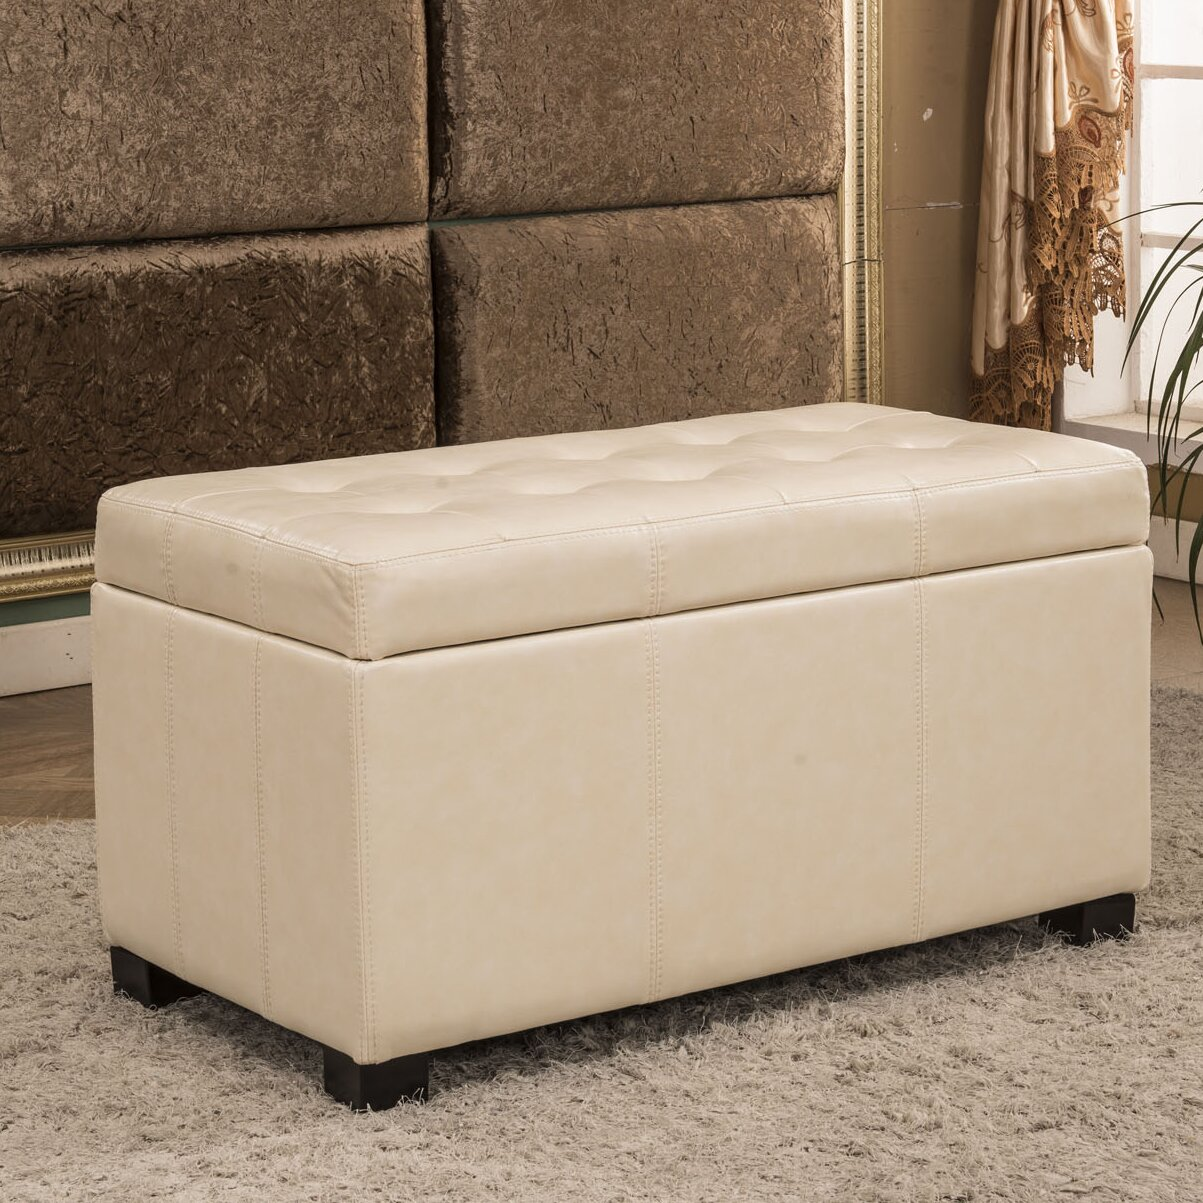 Upholstered Foyer Bench : Bellasario collection upholstered storage entryway bench